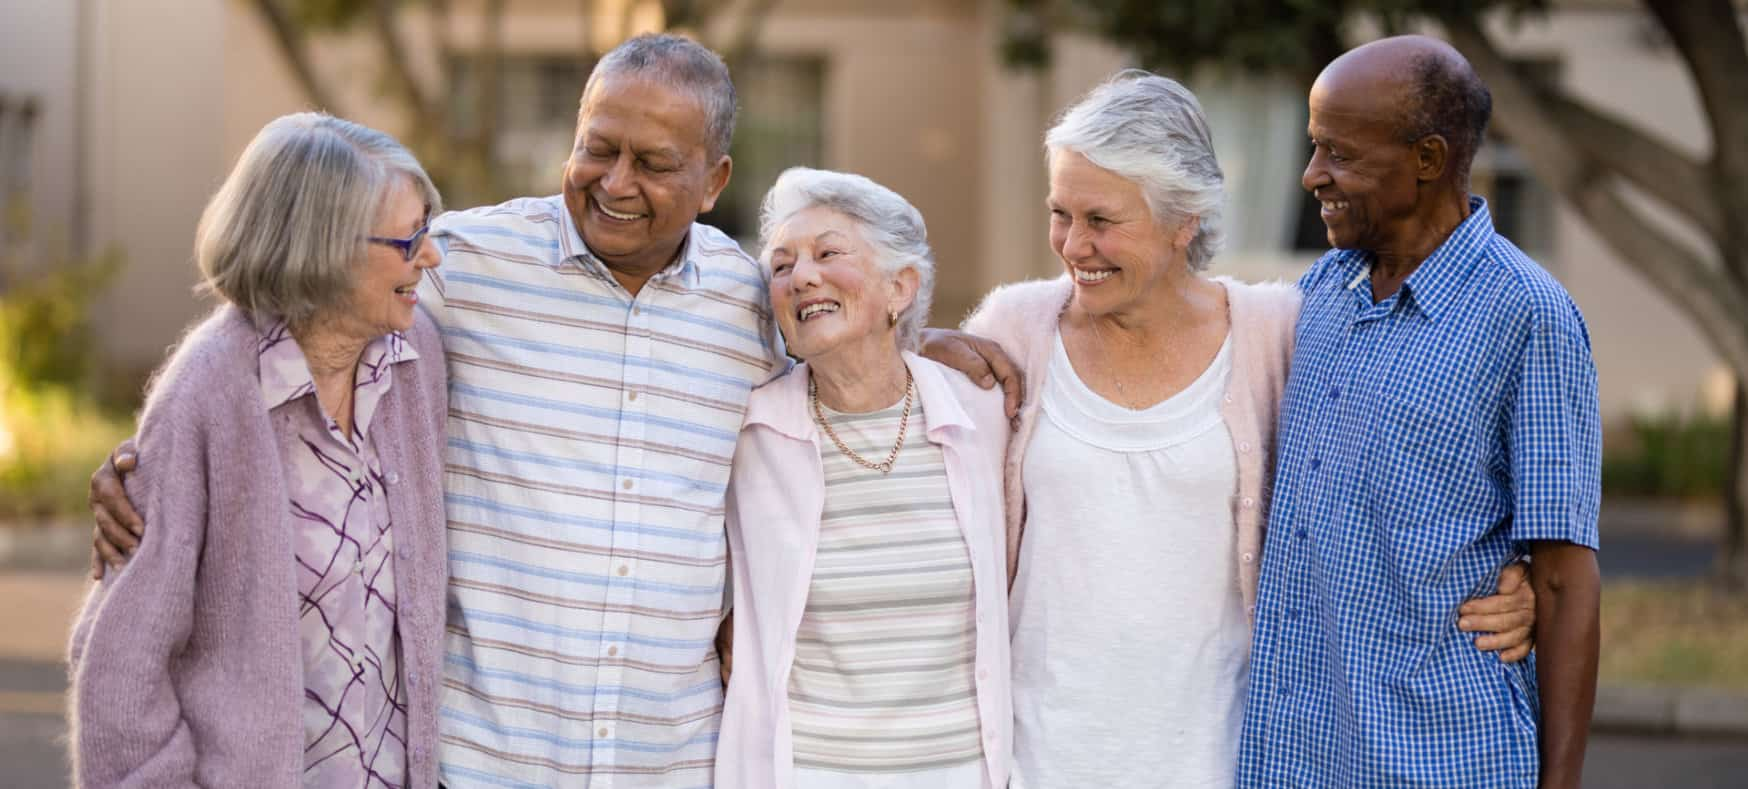 old people showing their genuine smile